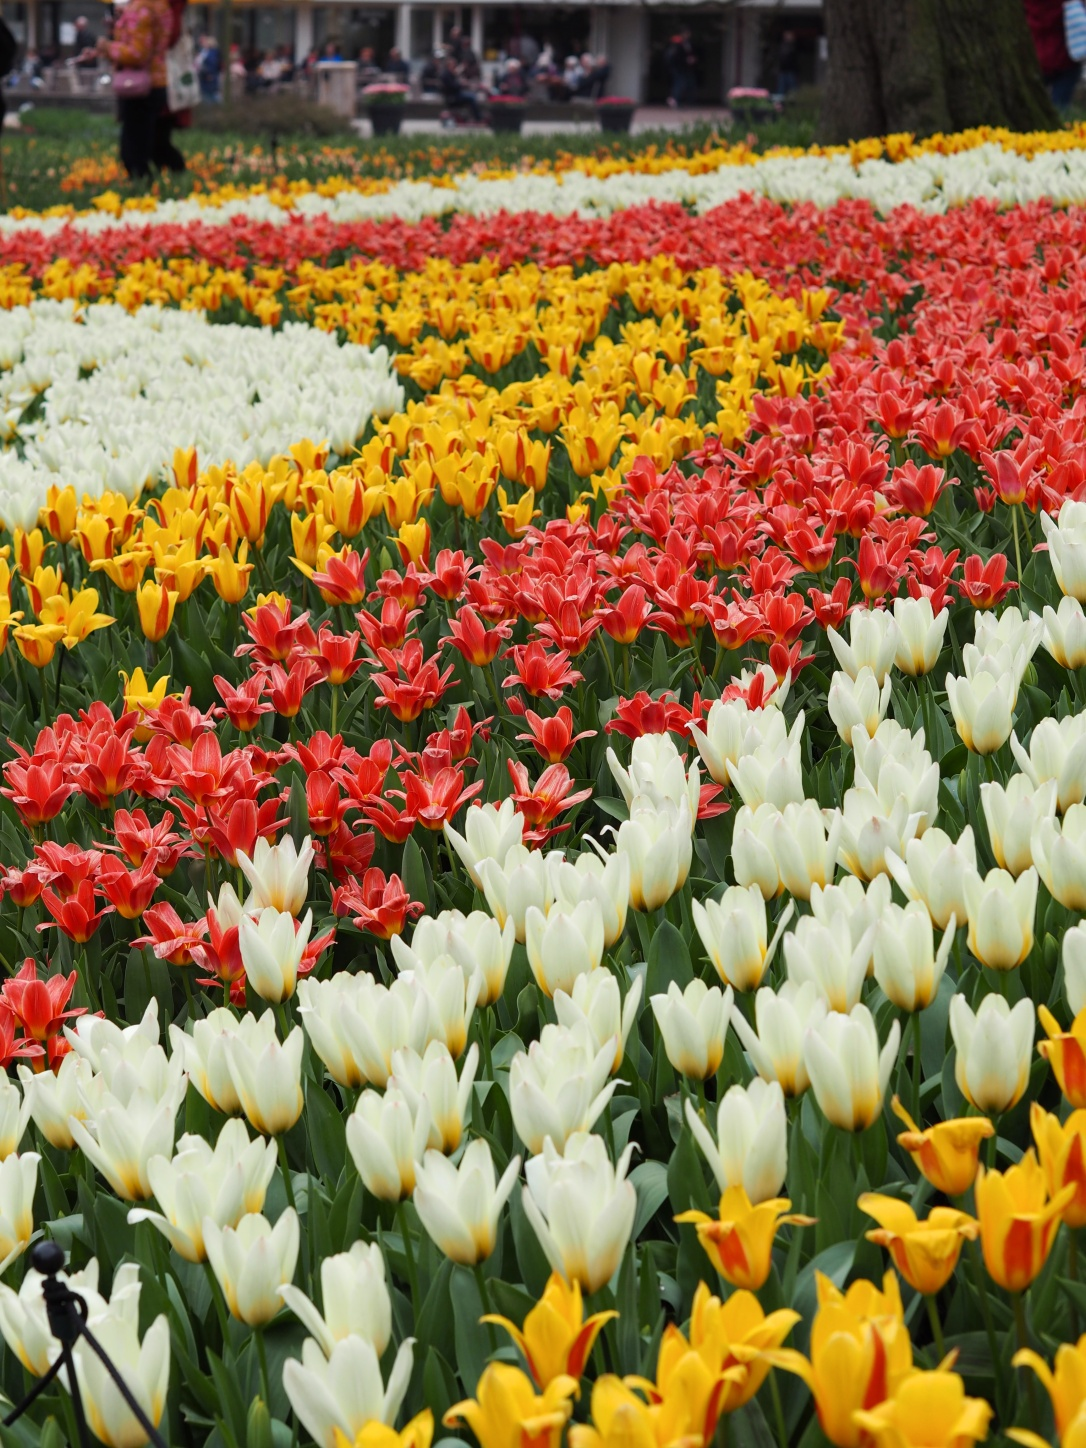 Tulips in Keukenhof Holland